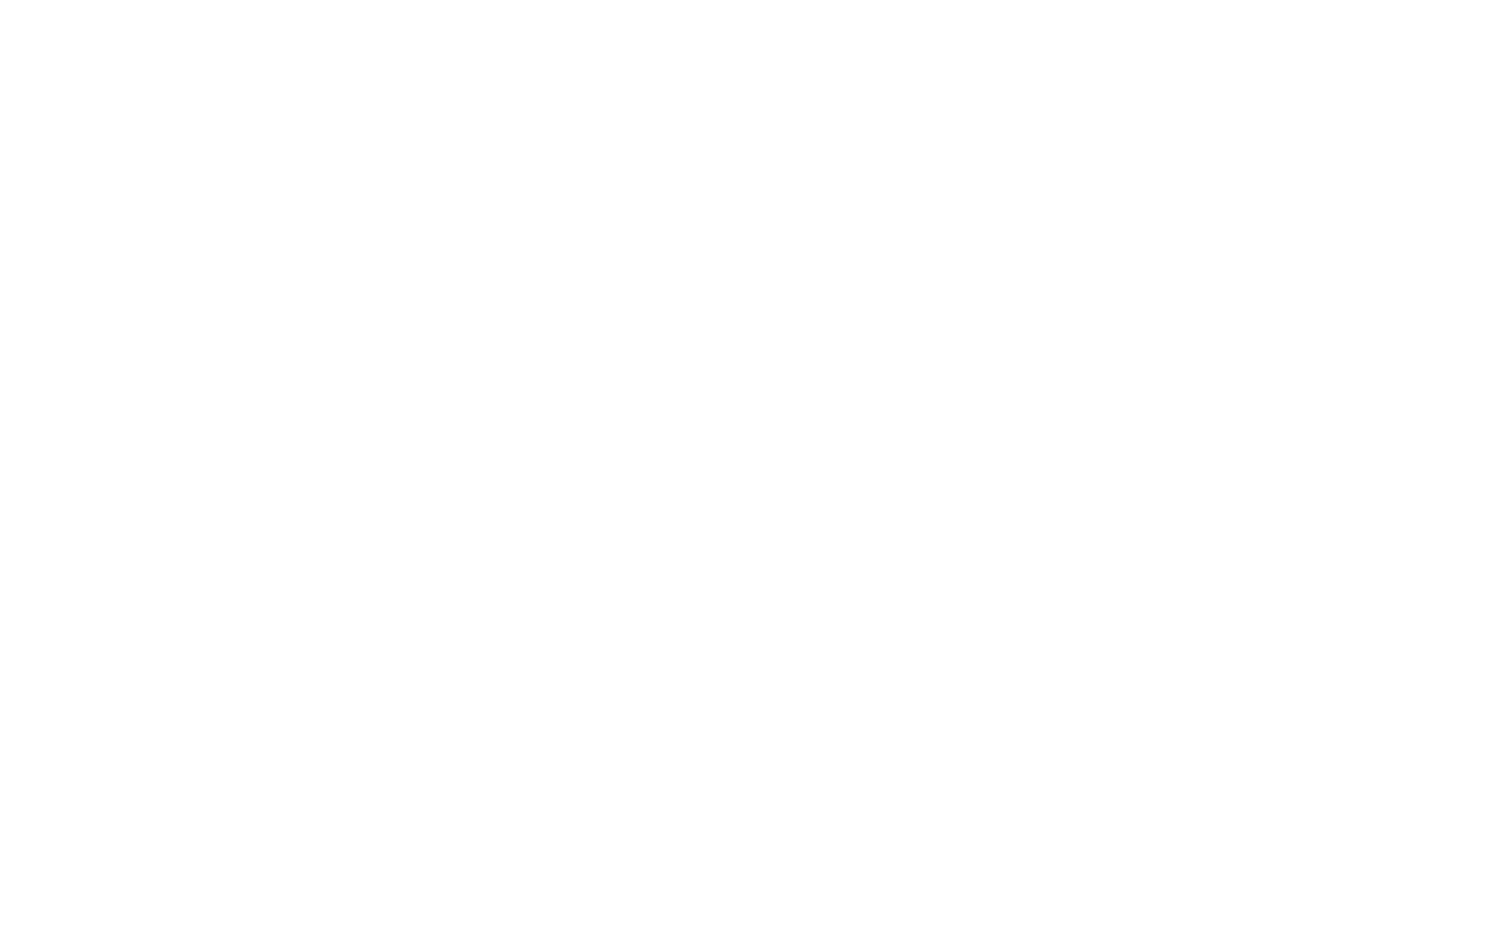 Air Concierge